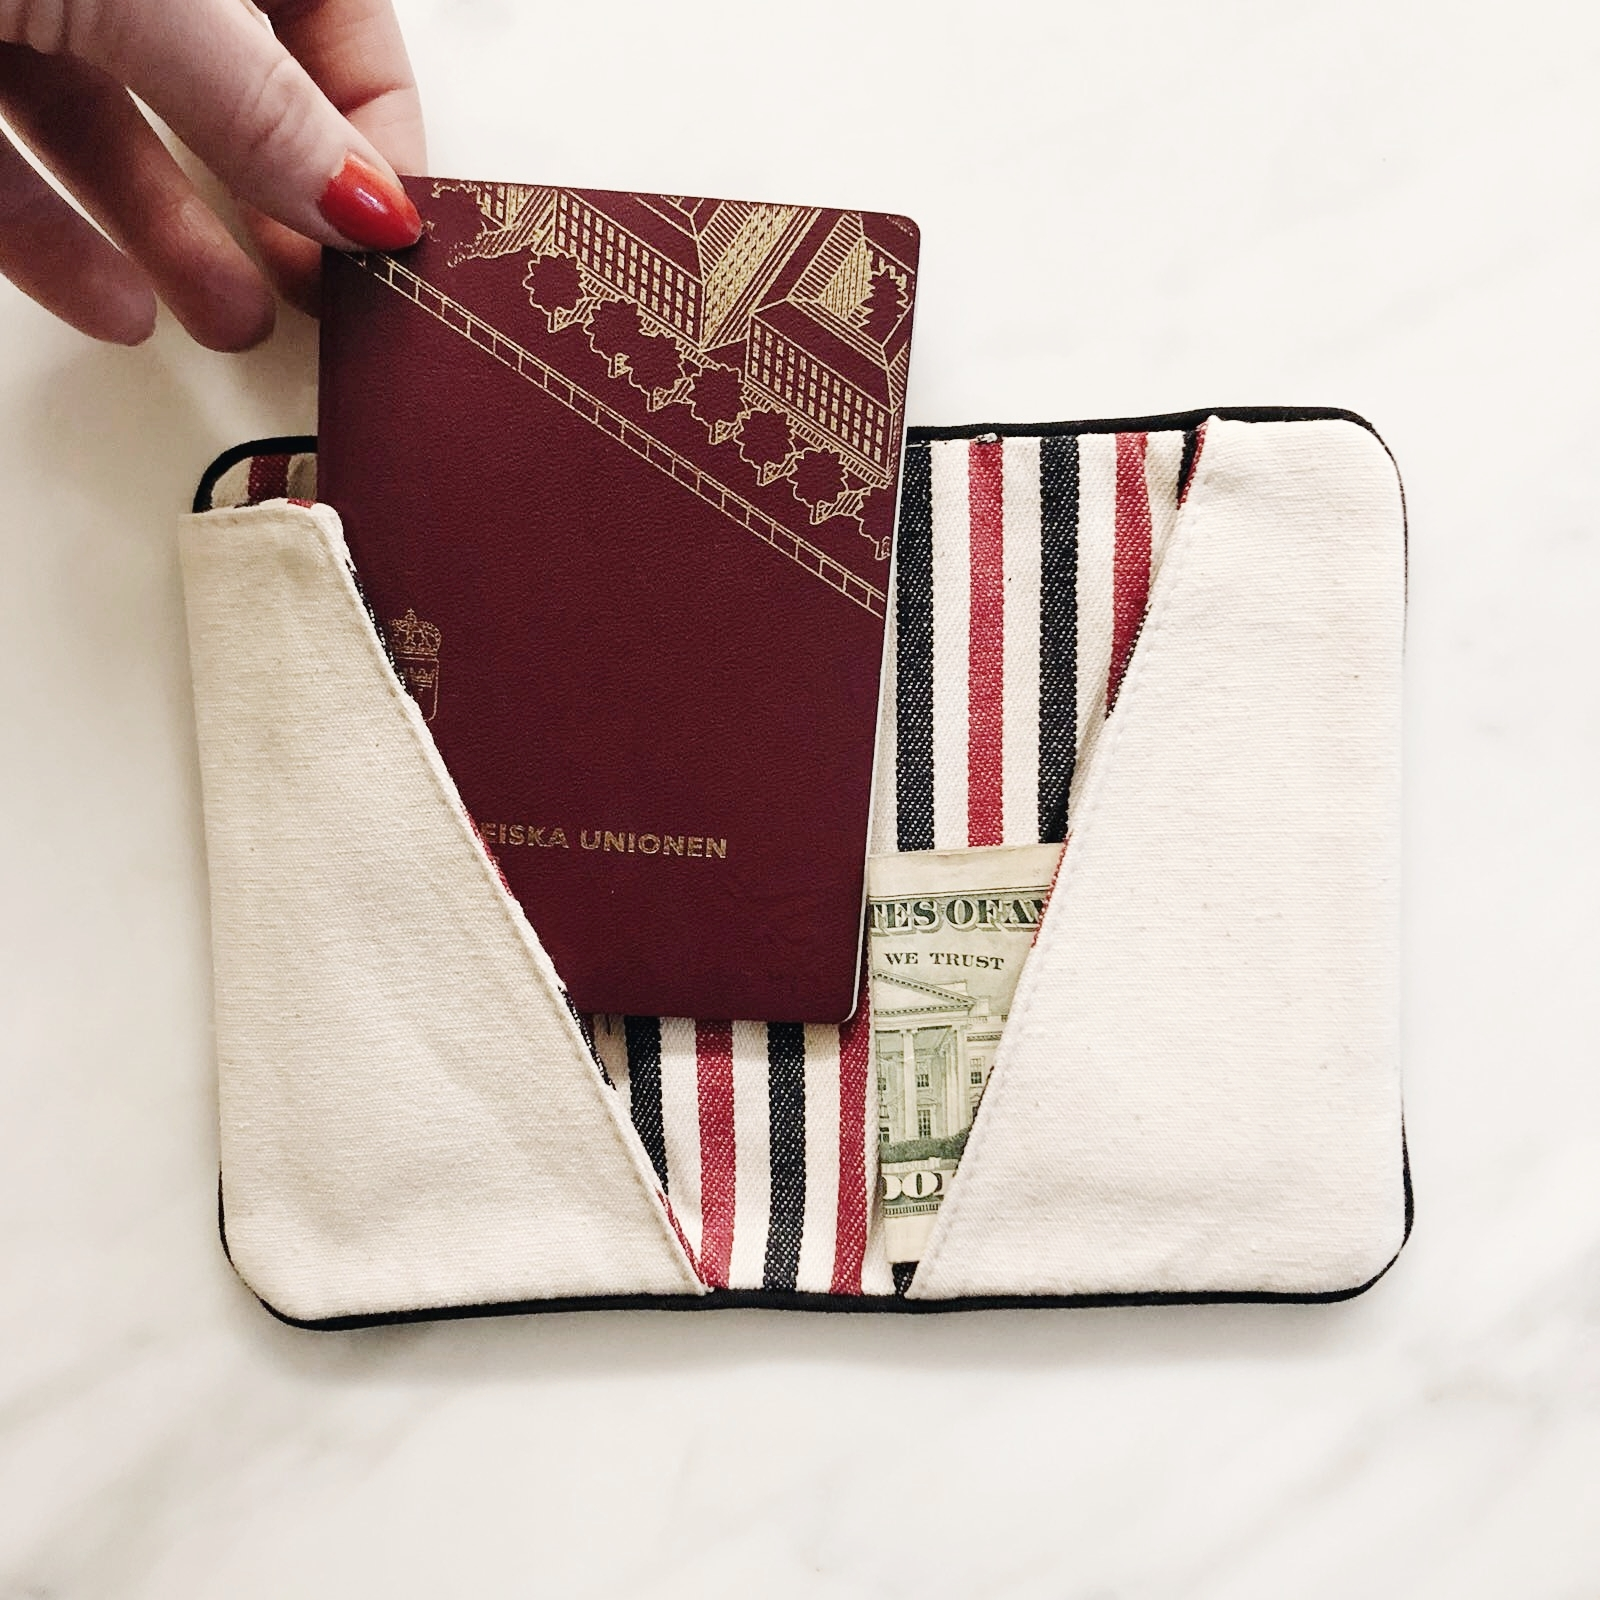 Don't loose it - Airports can be a stressful place and it's so easy to misplace you passport and boarding card in the hustle bustle. Keep your things collected in one place with our passport holder. Extra tips is to monogram your name on it so you can tell straight away whom it belongs to.Price $20.00